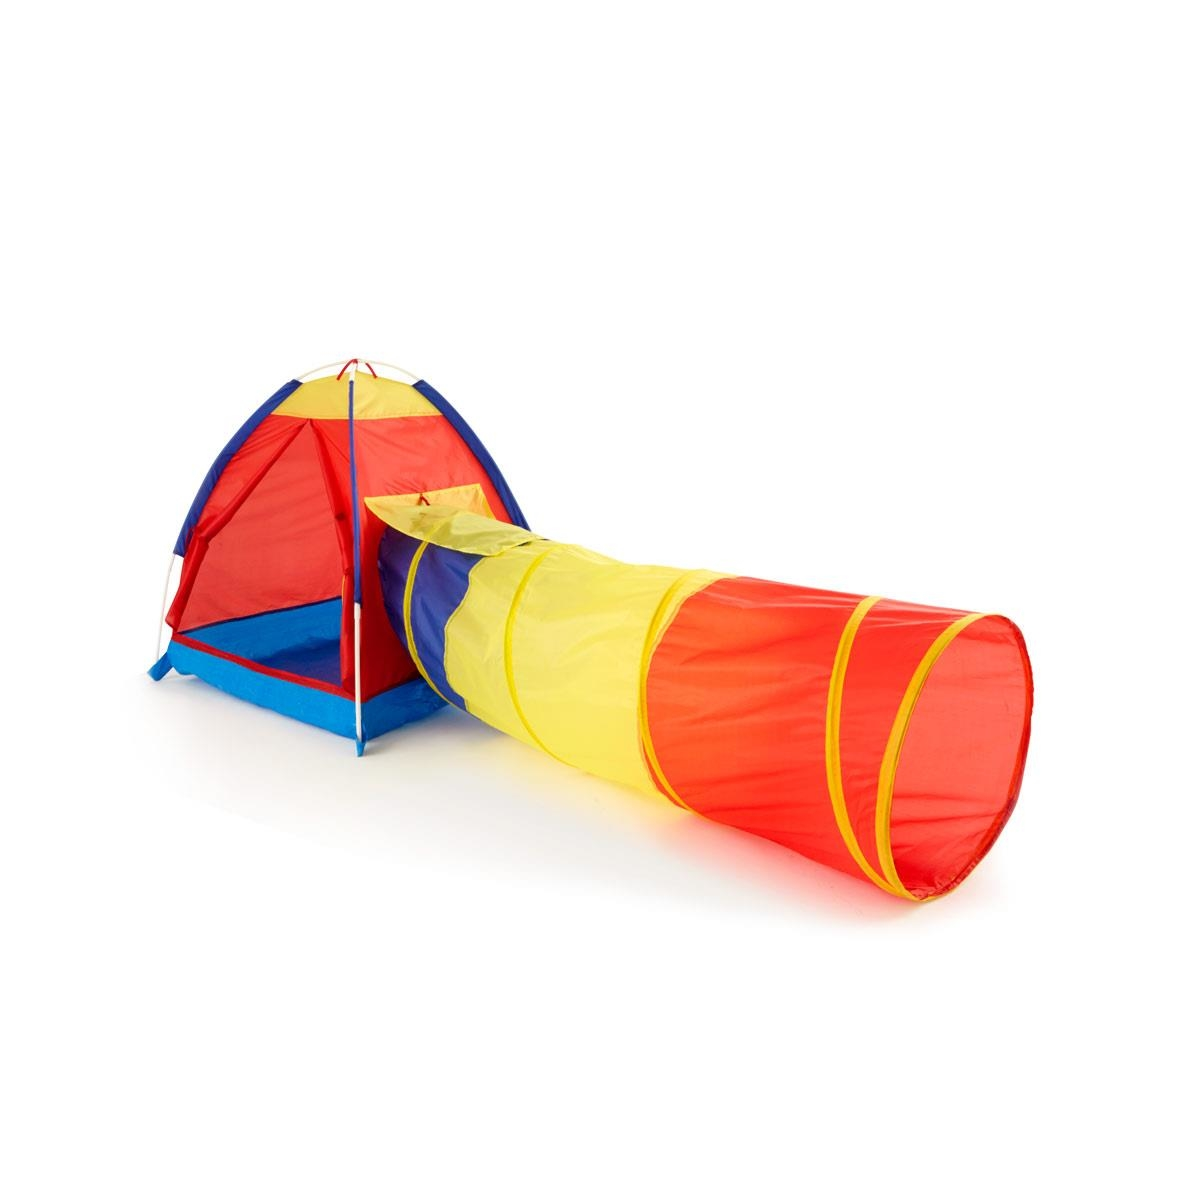 Kids Play Tent 2 In 1 Kids Play Tent Kmart